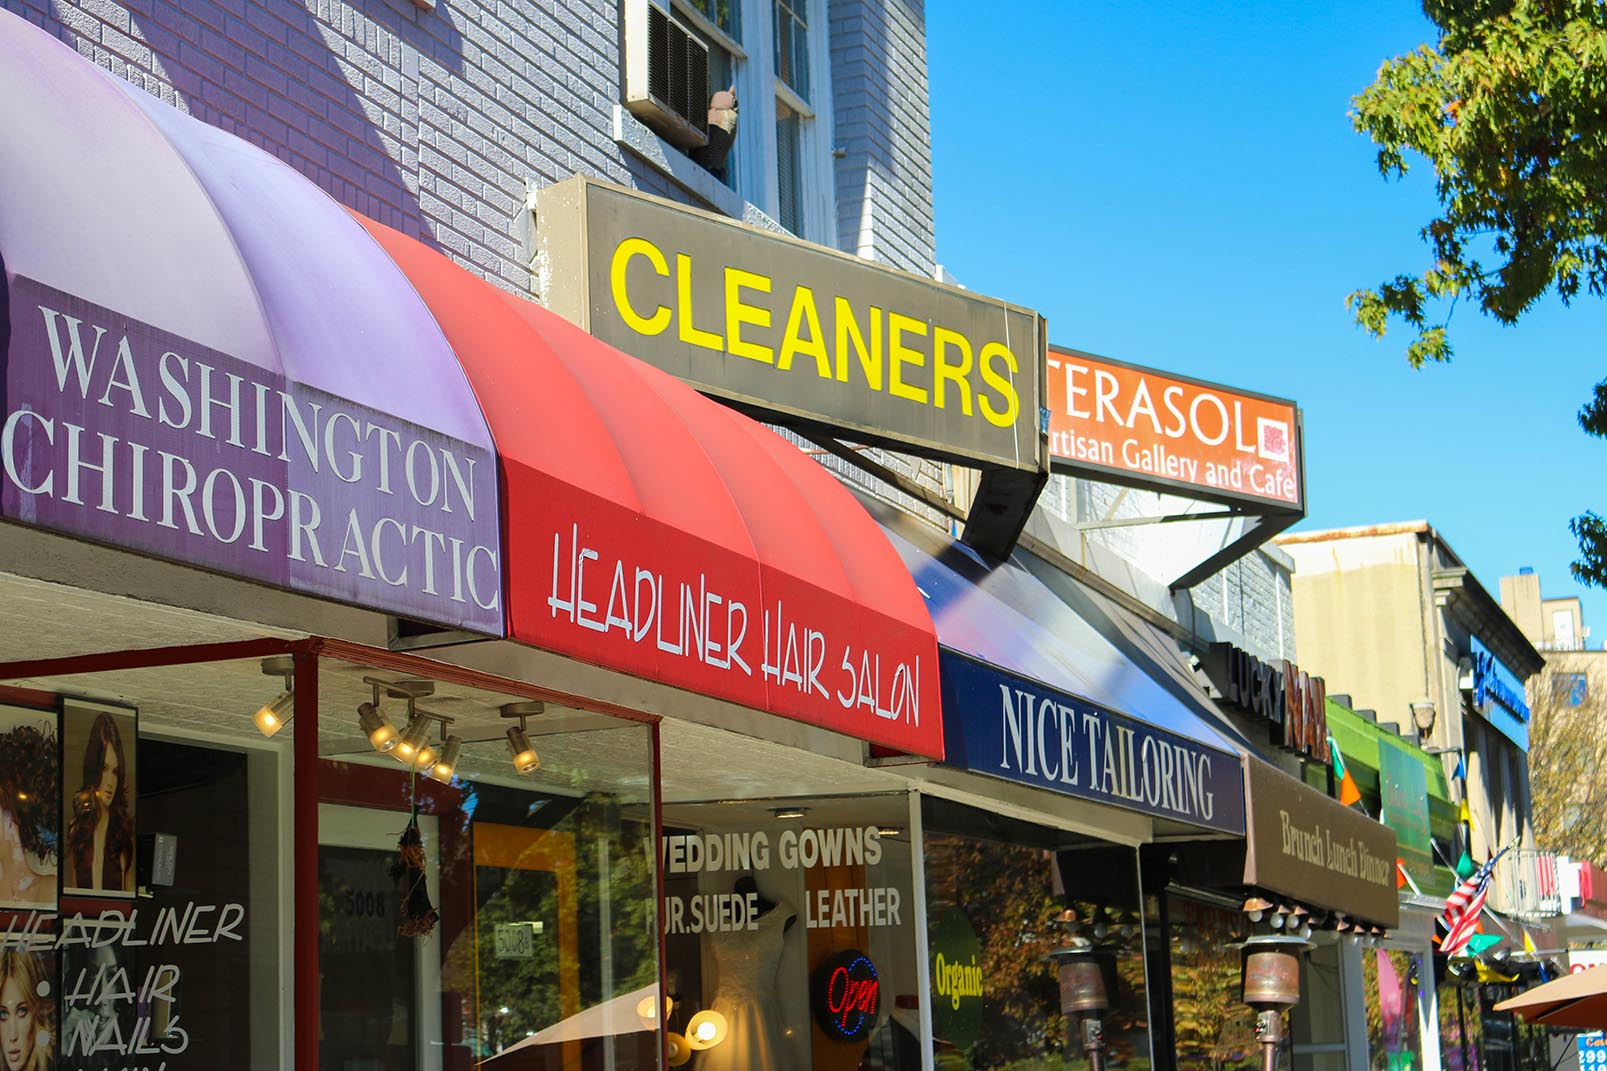 Cleaners and other businesses in Chevy Chase, Washington, DC